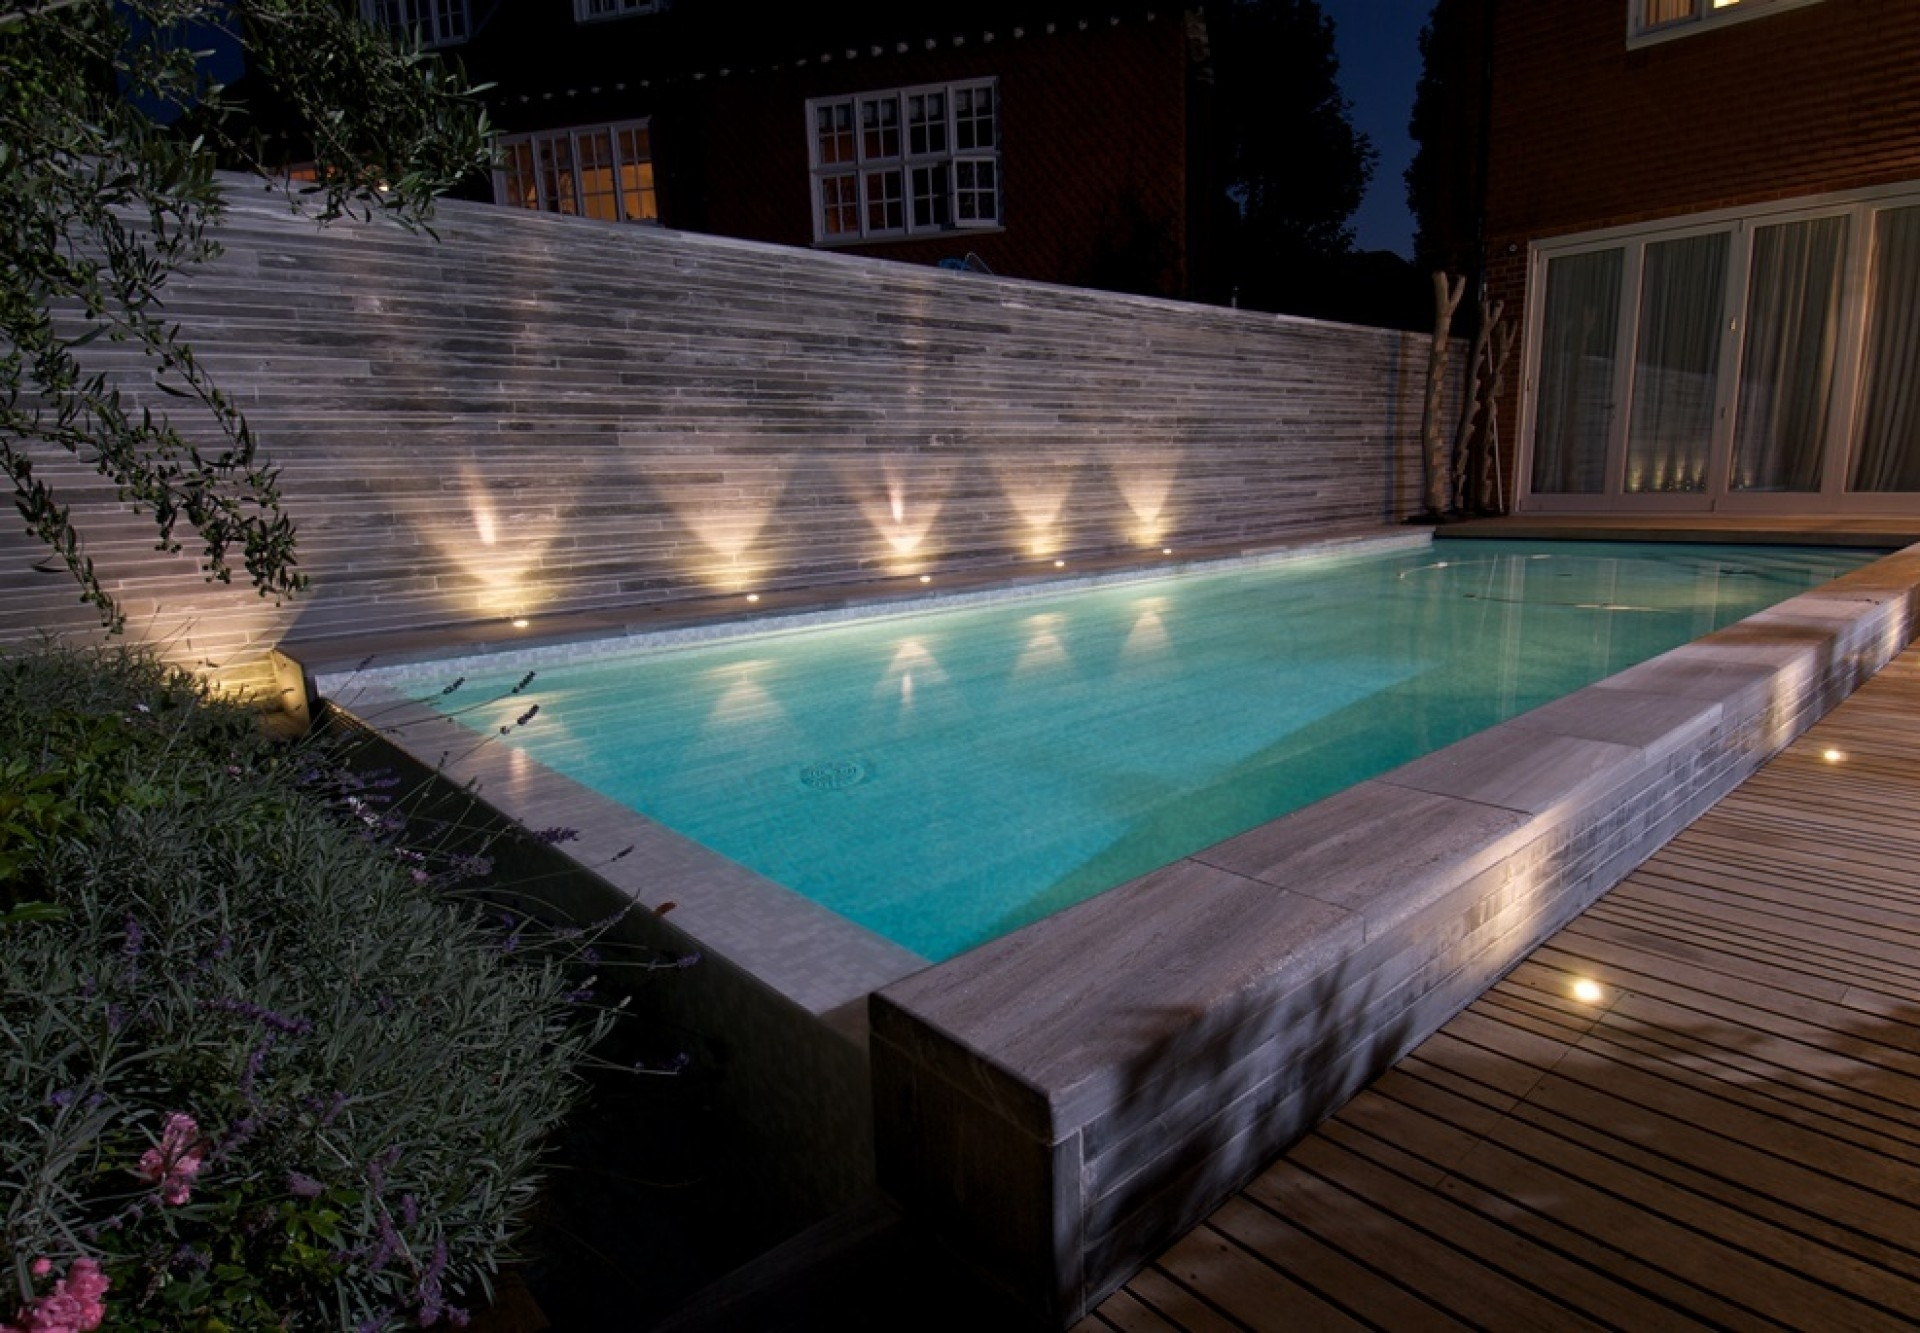 Photos: Outside Lights For Pool Area,   Diy Home Design & Furniture In Outdoor Lanterns For Poolside (Photo 4 of 20)